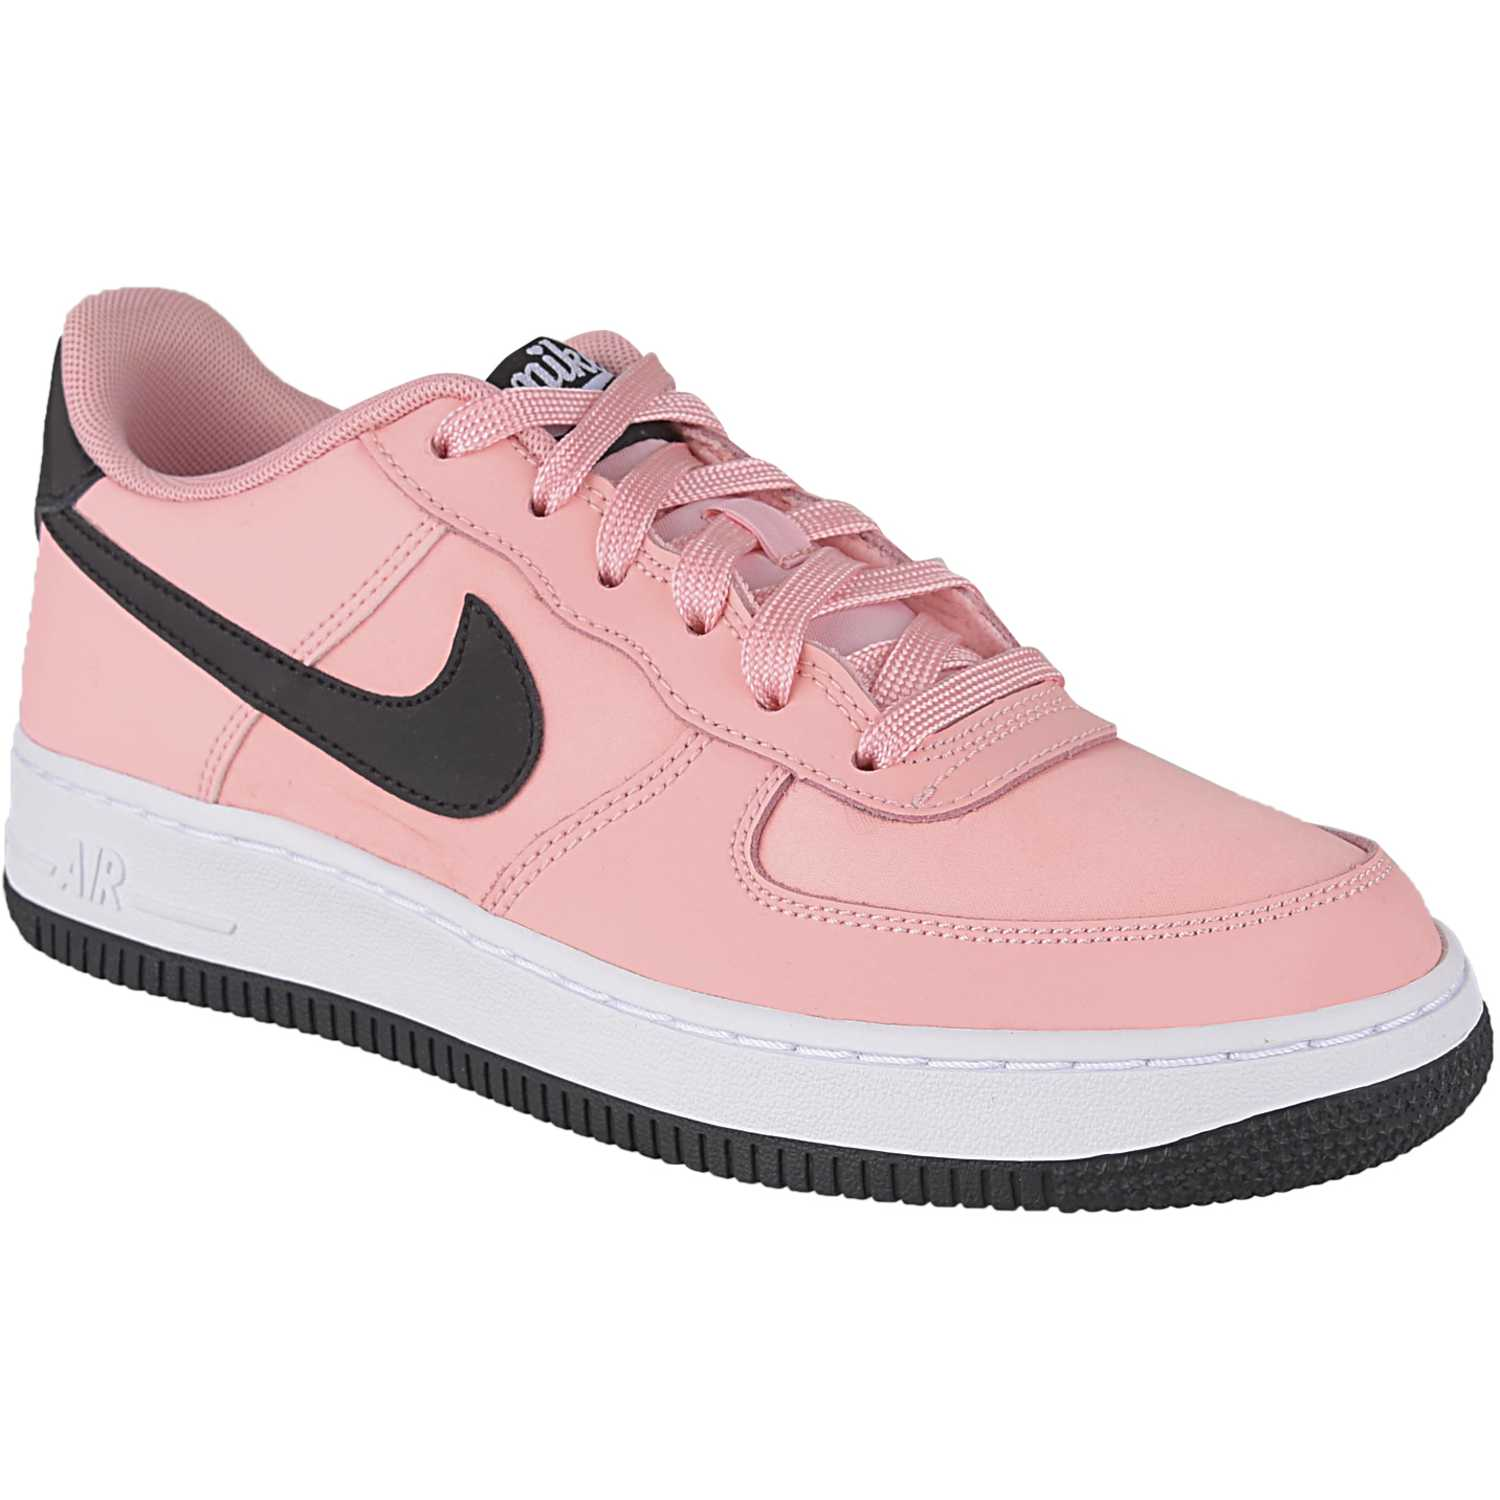 Zapatillas de Jovencita Nike Rosado negro air force 1 vday